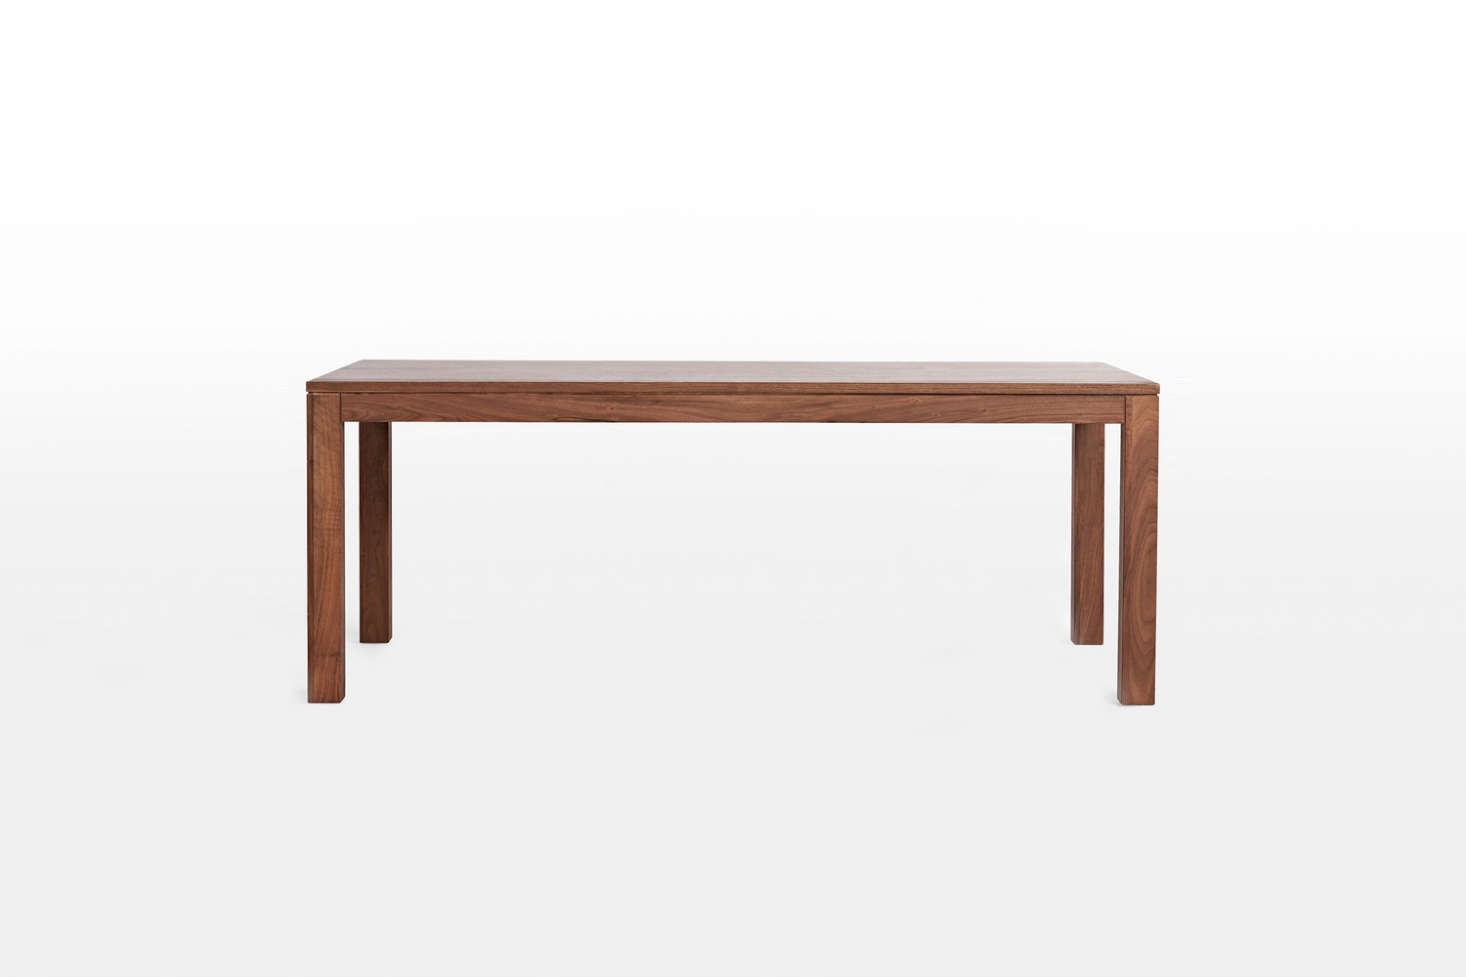 Available in walnut (shown) and White Oak, theLarge Crosby Table is $1,599 for the 78 3/4-inch size at Rejuvenation.